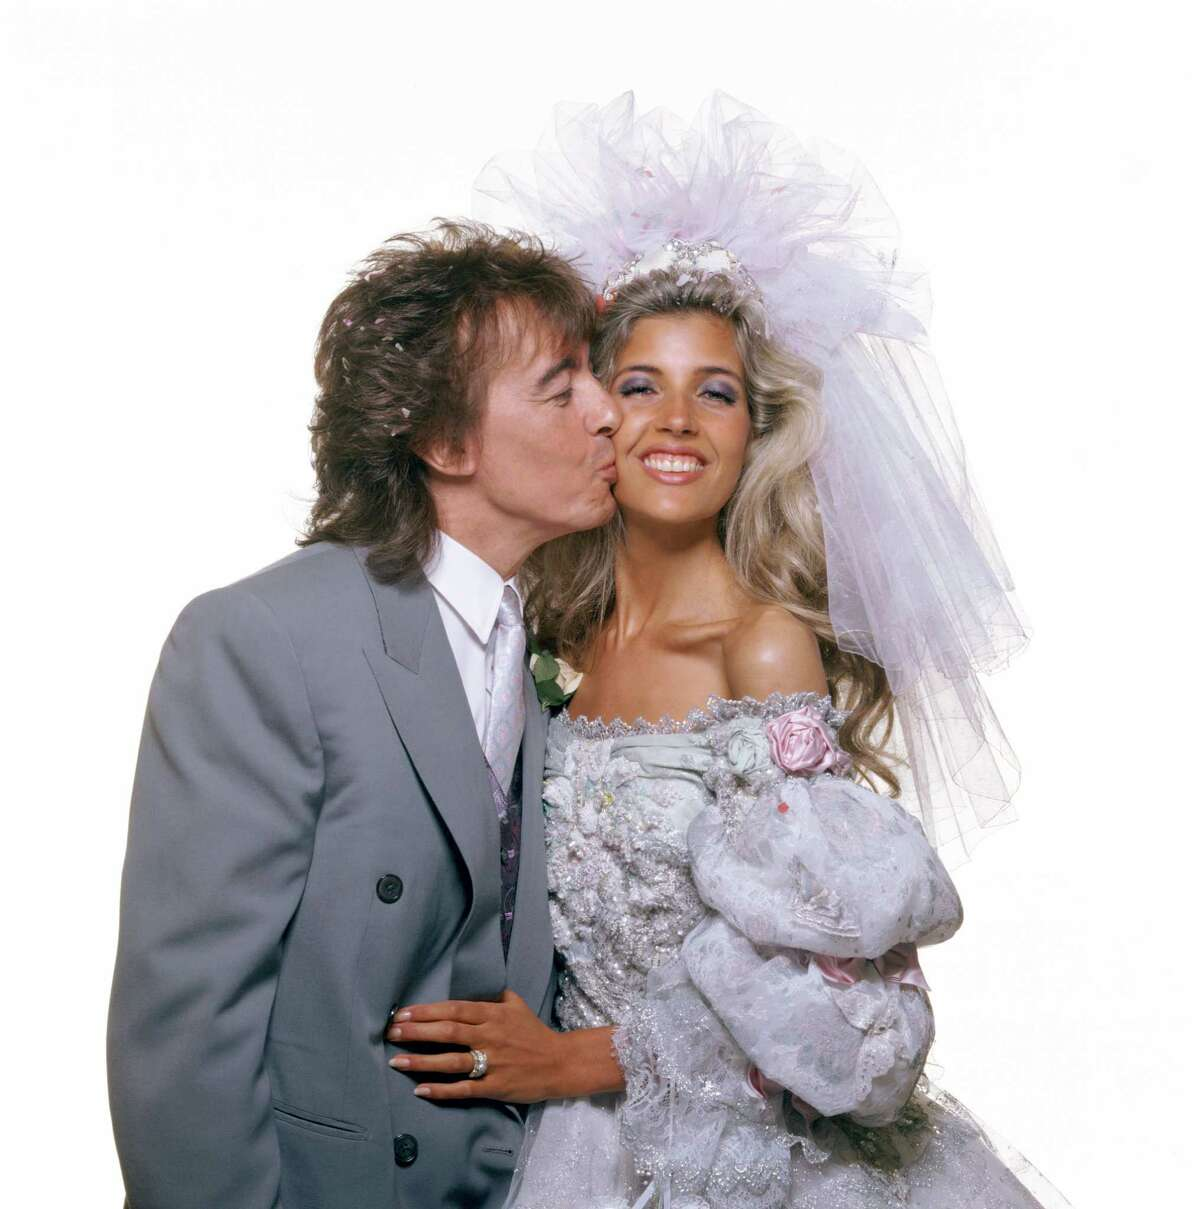 Rolling Stone bassist Bill Wyman kissing his new bride Mandy Smith on their wedding day in London, 5th June 1989.